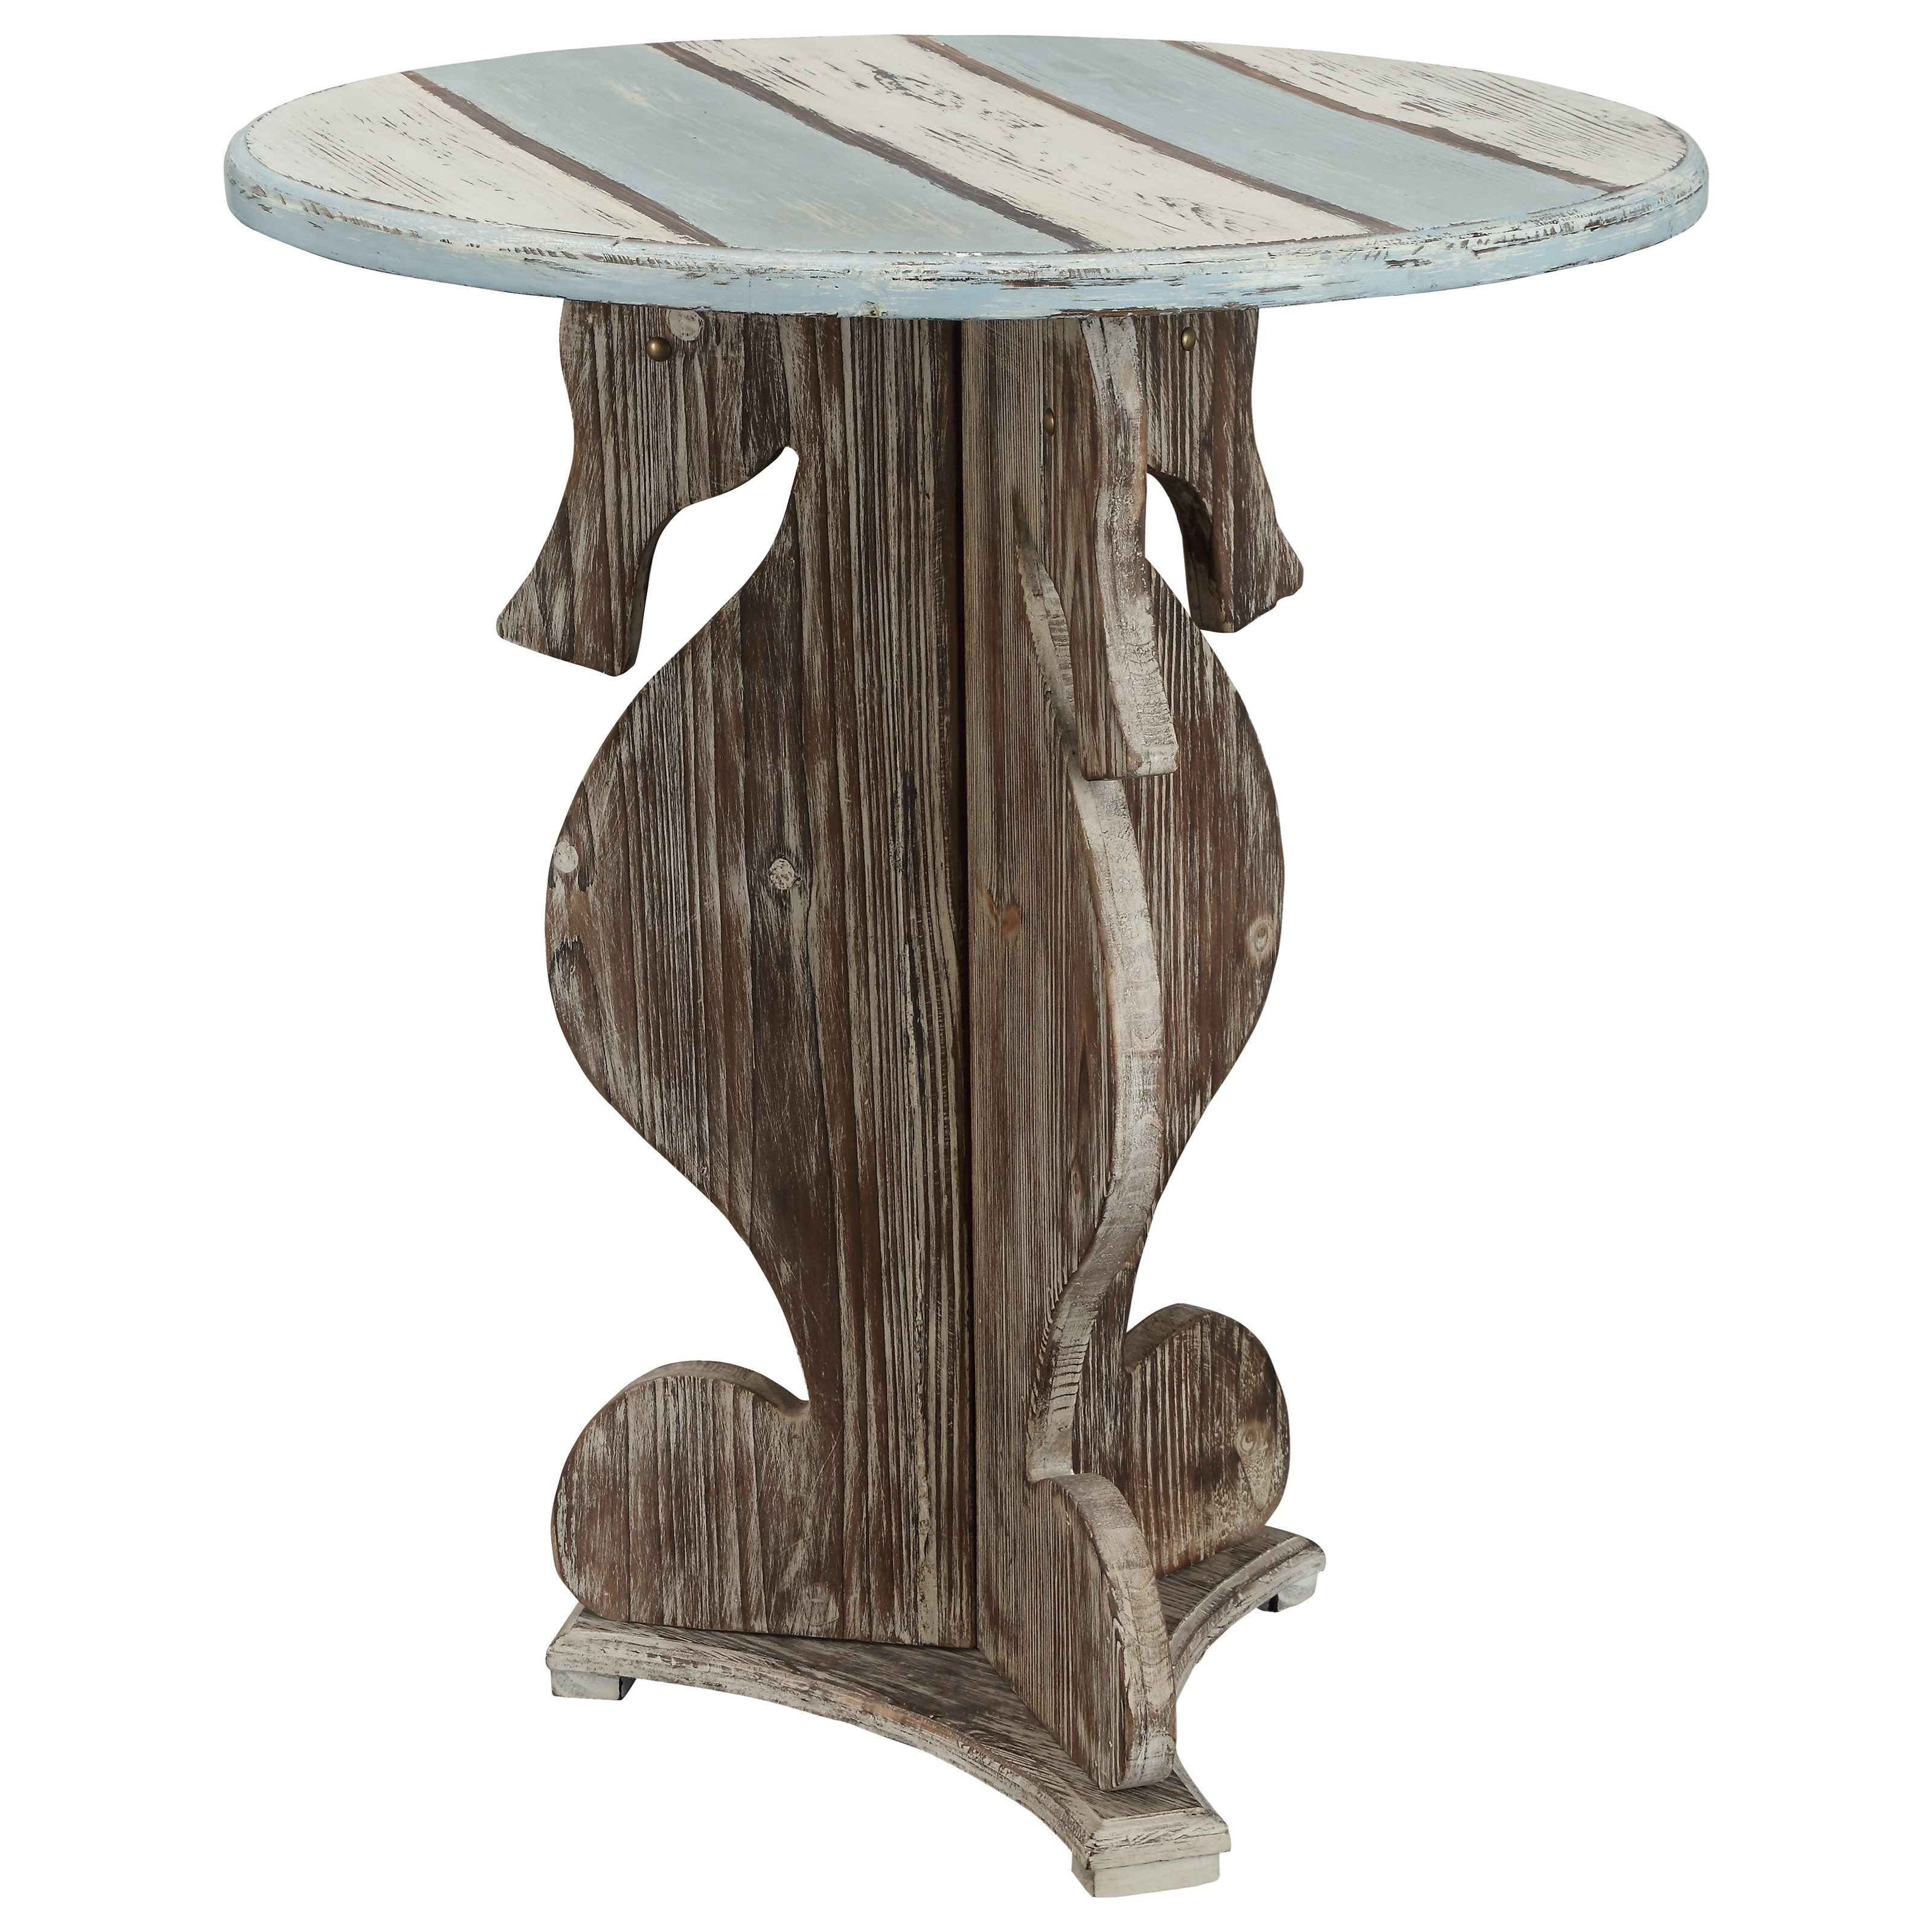 Seahorse Table